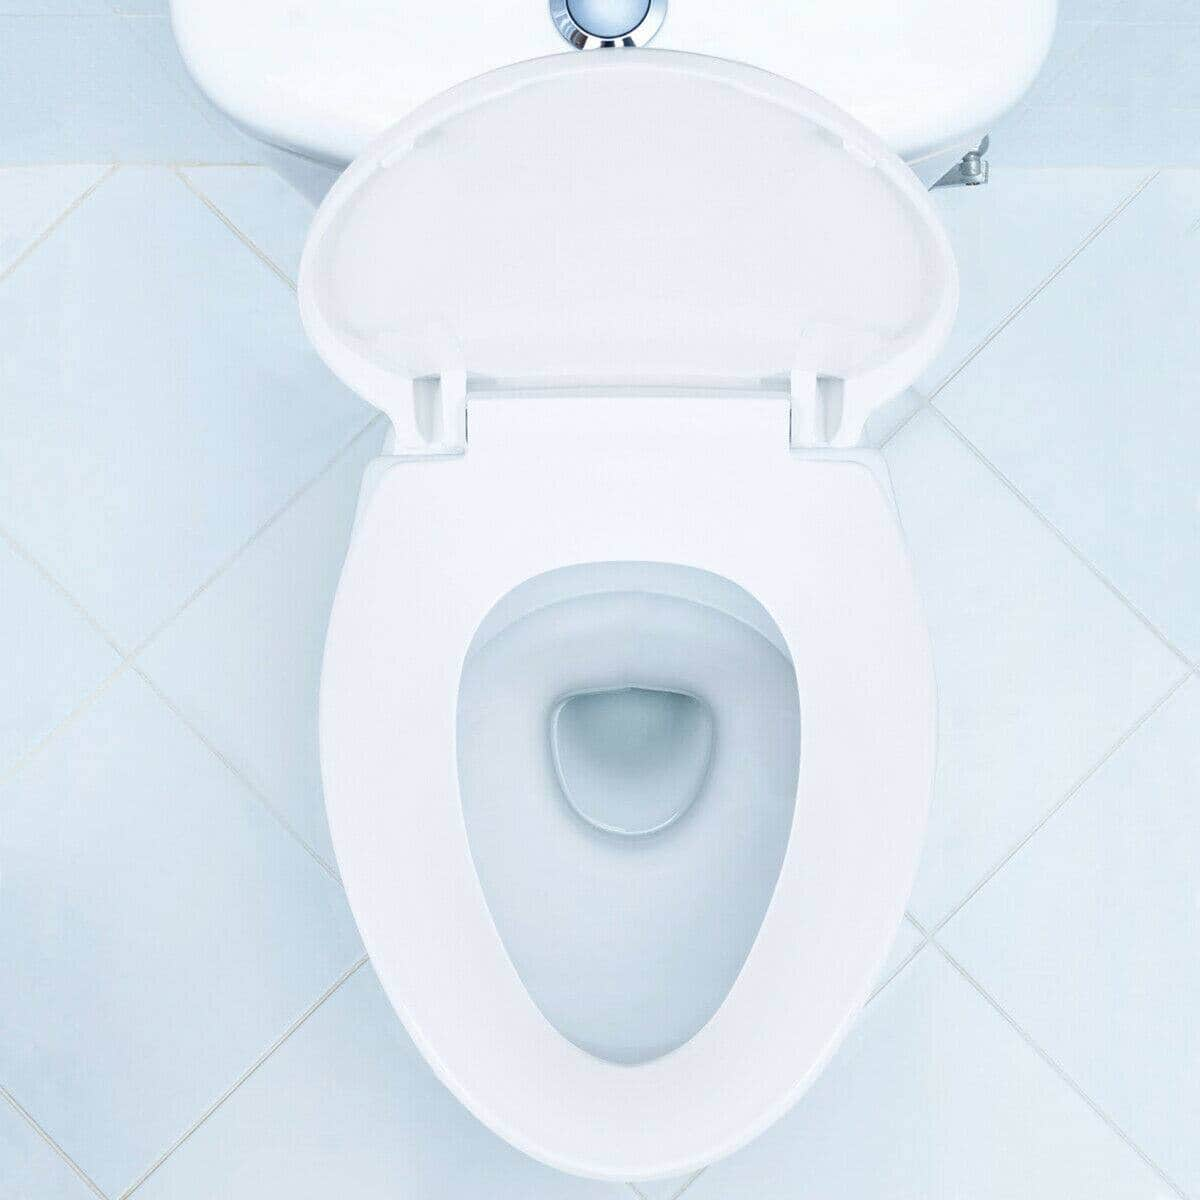 Costway Elongated Slow-Close Toilet Seat with Non-Slip Seat-$25.95 AC + Free Shipping